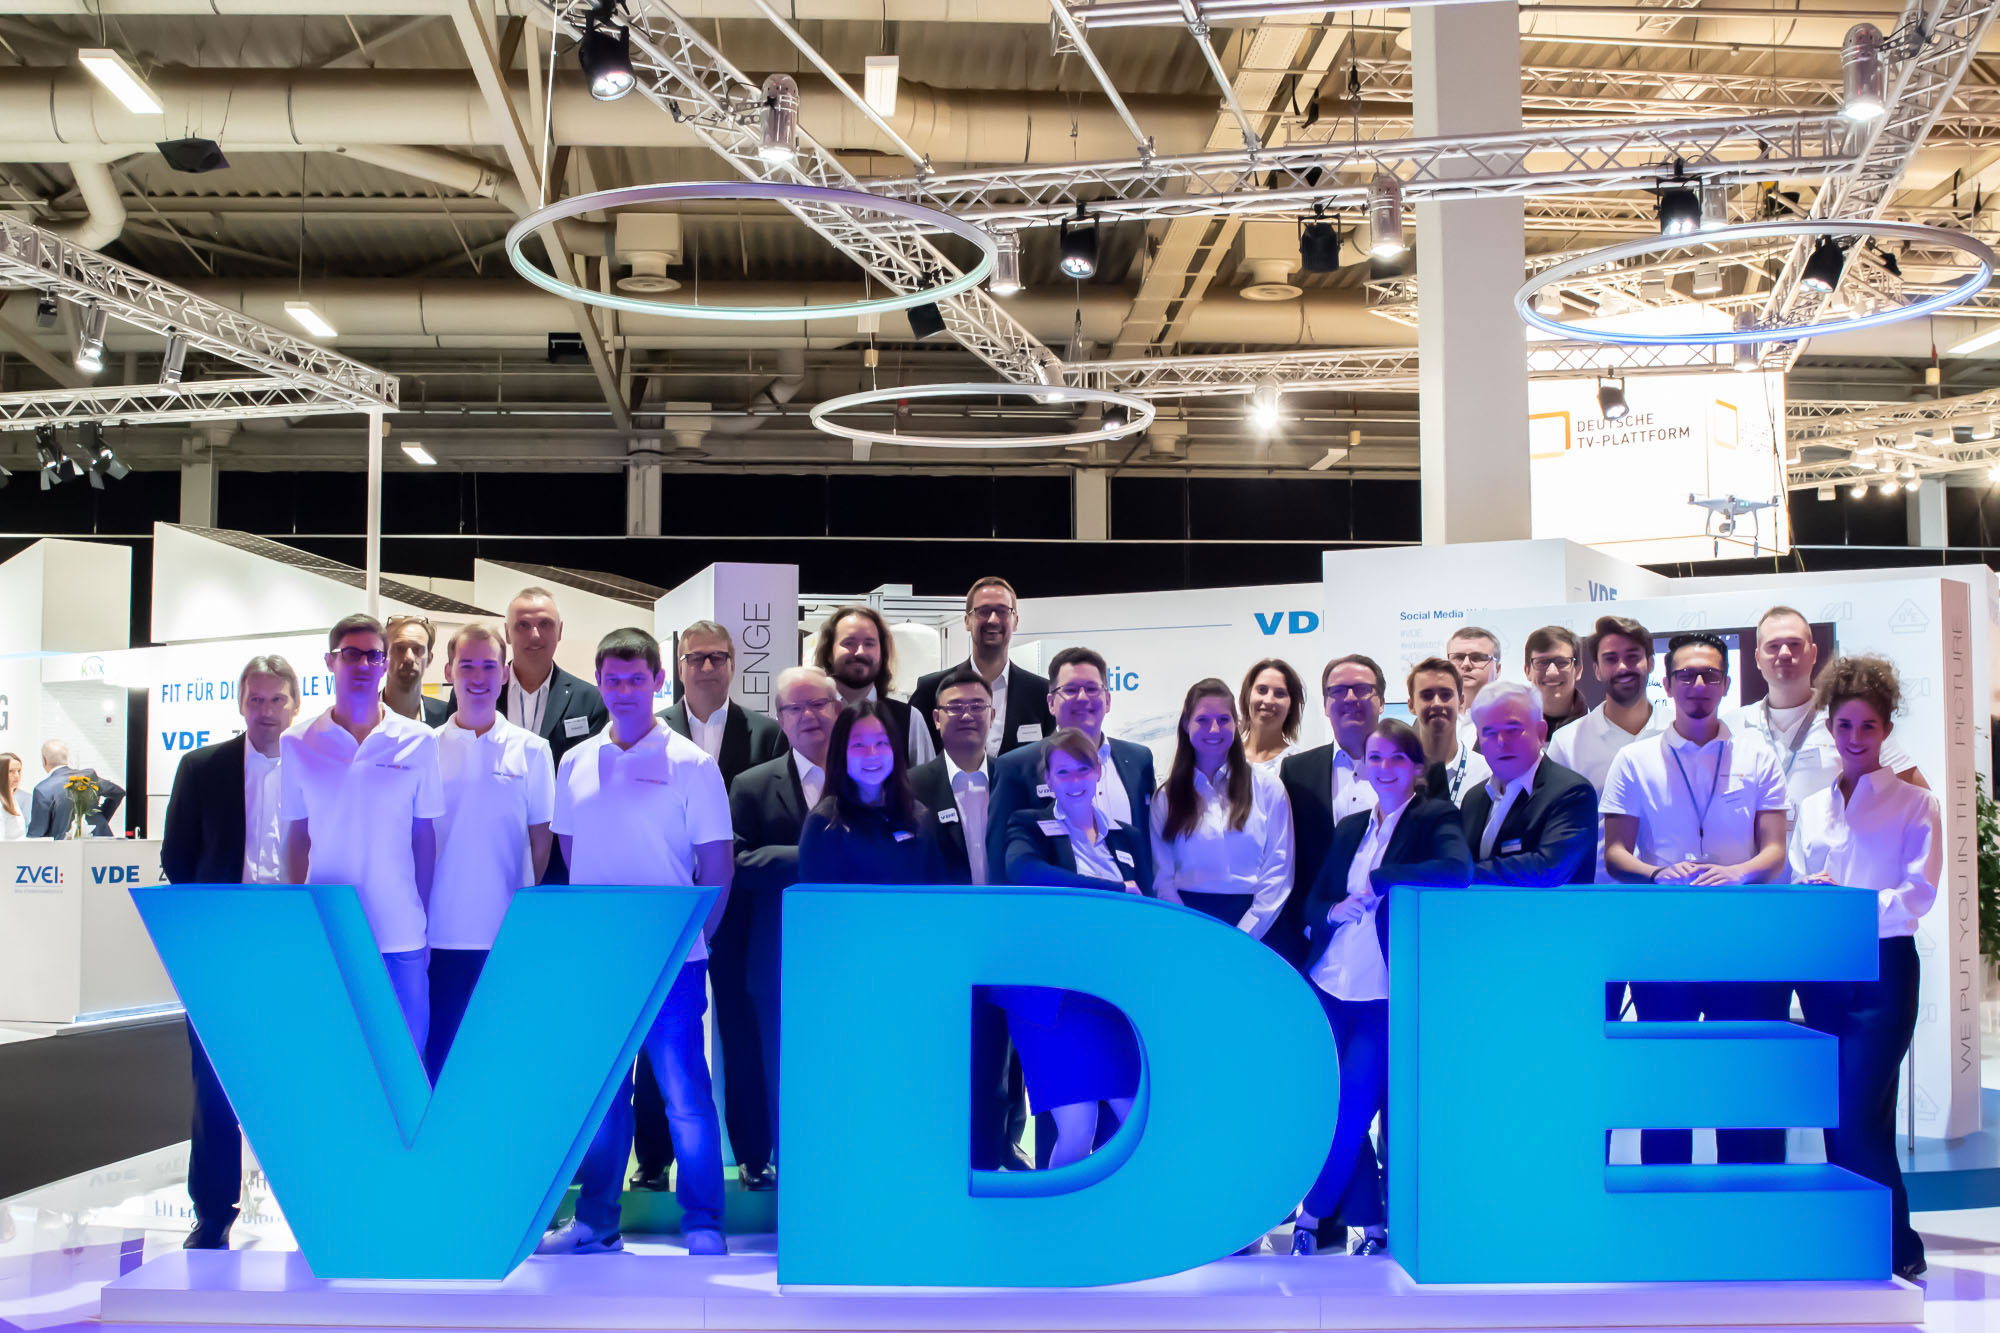 The VDE team was available to answer questions at the IFA